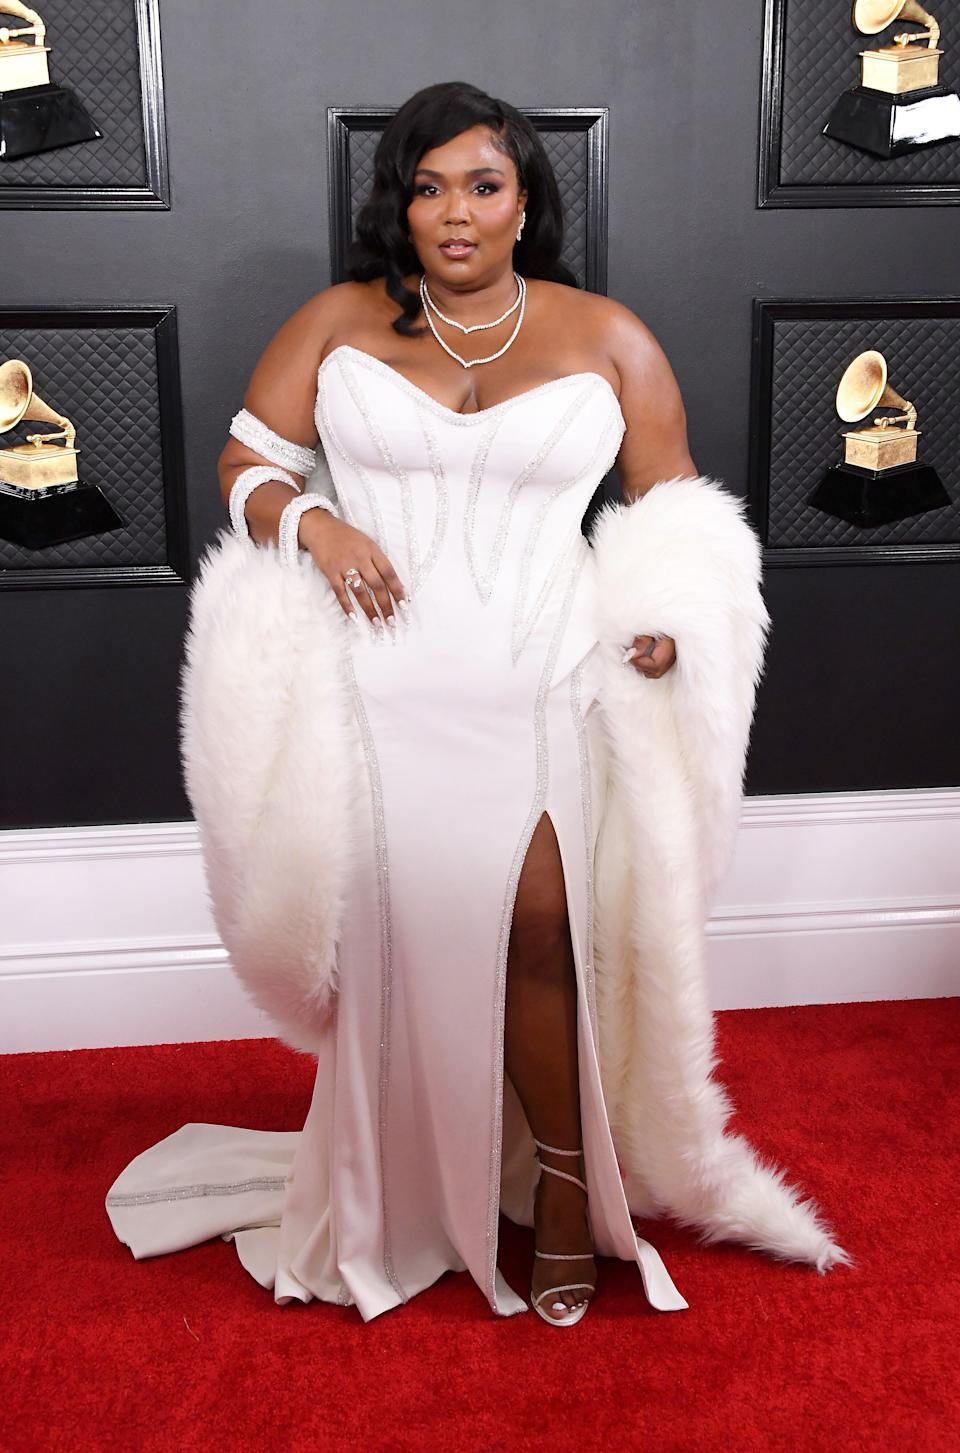 Come on, did you really think Lizzo would wear anything but an ultra-glam bedazzled Versace dress accessorized with fur?